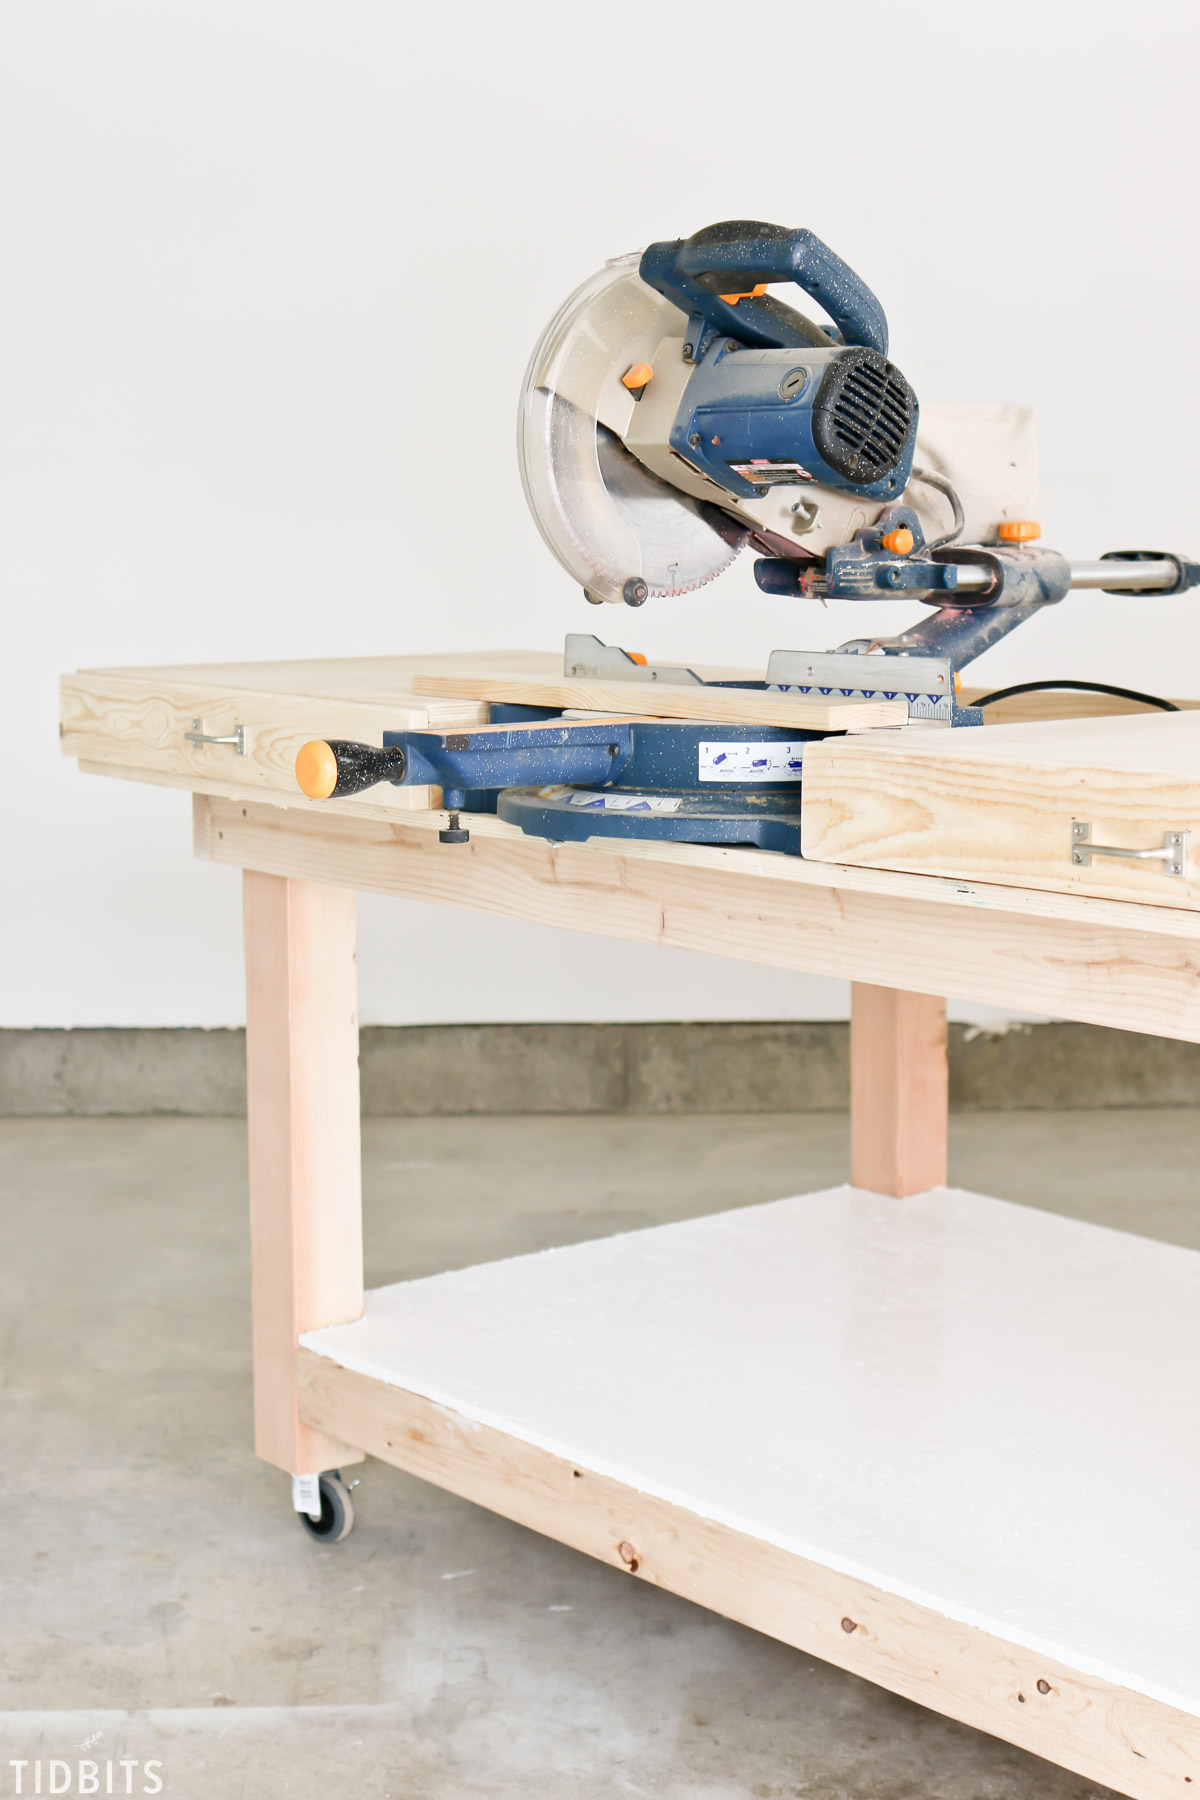 DIY Shop Worktable